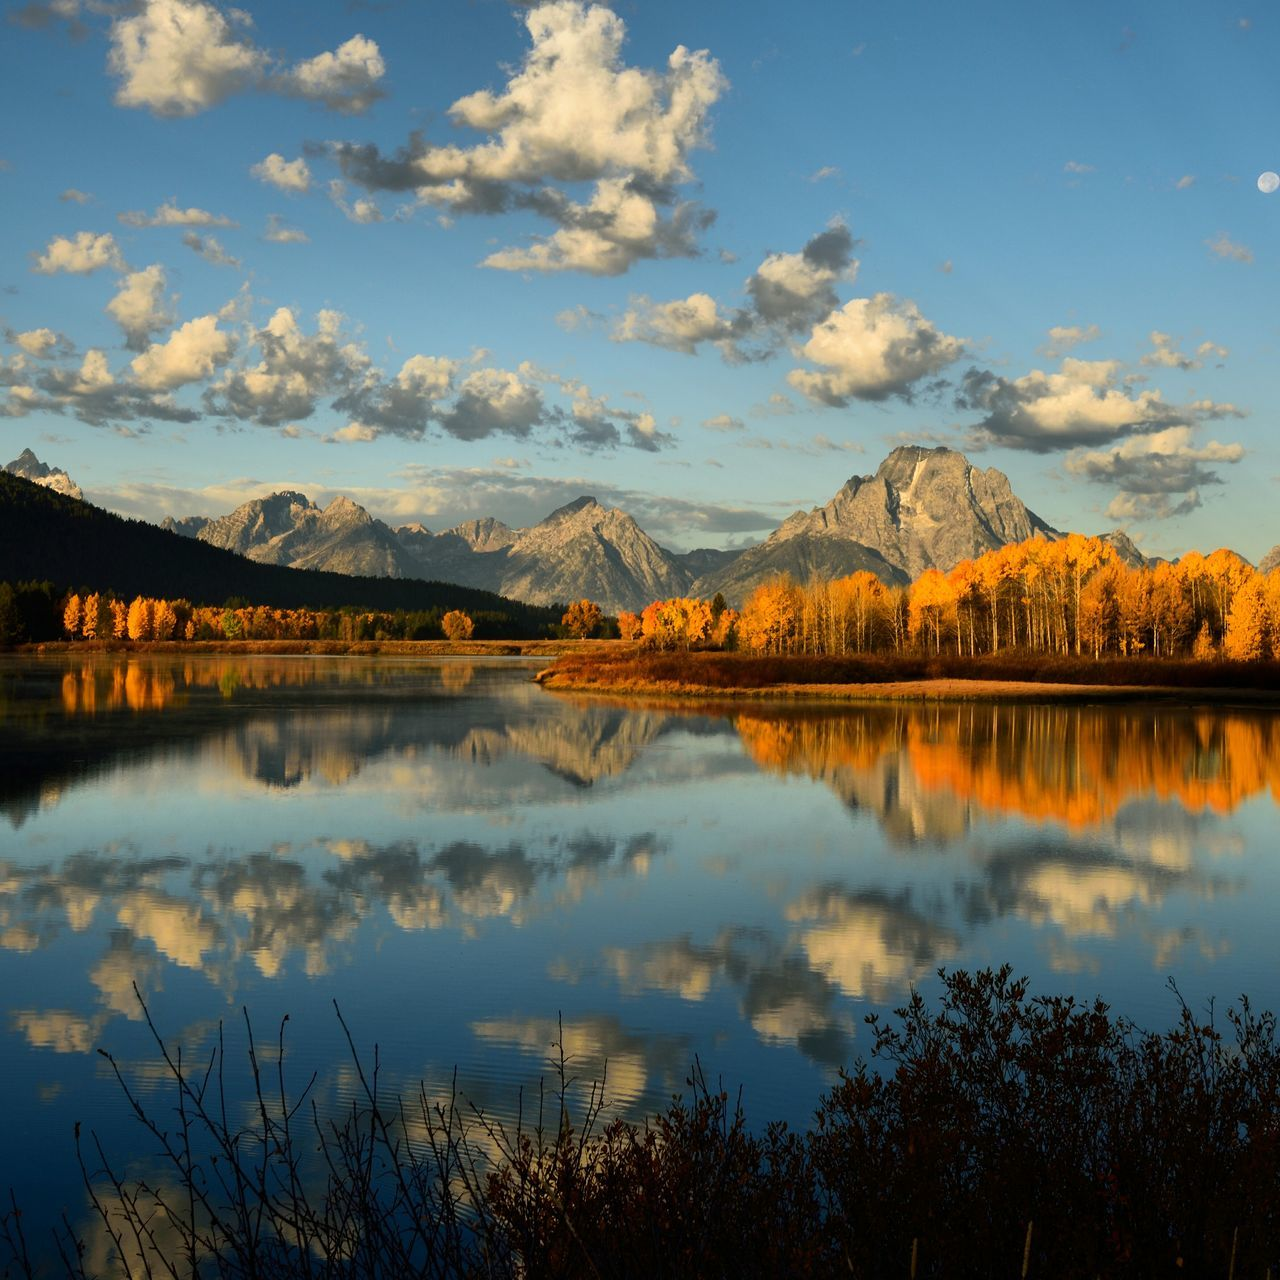 Eyeemhiking Eyeemoutdoors Eyeemphotography EyeEm Nature Lover Grandtetonnationalpark Grandtetons SunriseReflection Golden Scenery Autumn Autumn🍁🍁🍁 Eyeemlandscape Landscape Travel Mountains Nationalpark Tranquility Nature Beautiful Scenery Beauty In Nature Lakeview Yellow Leaves Sky And Clouds